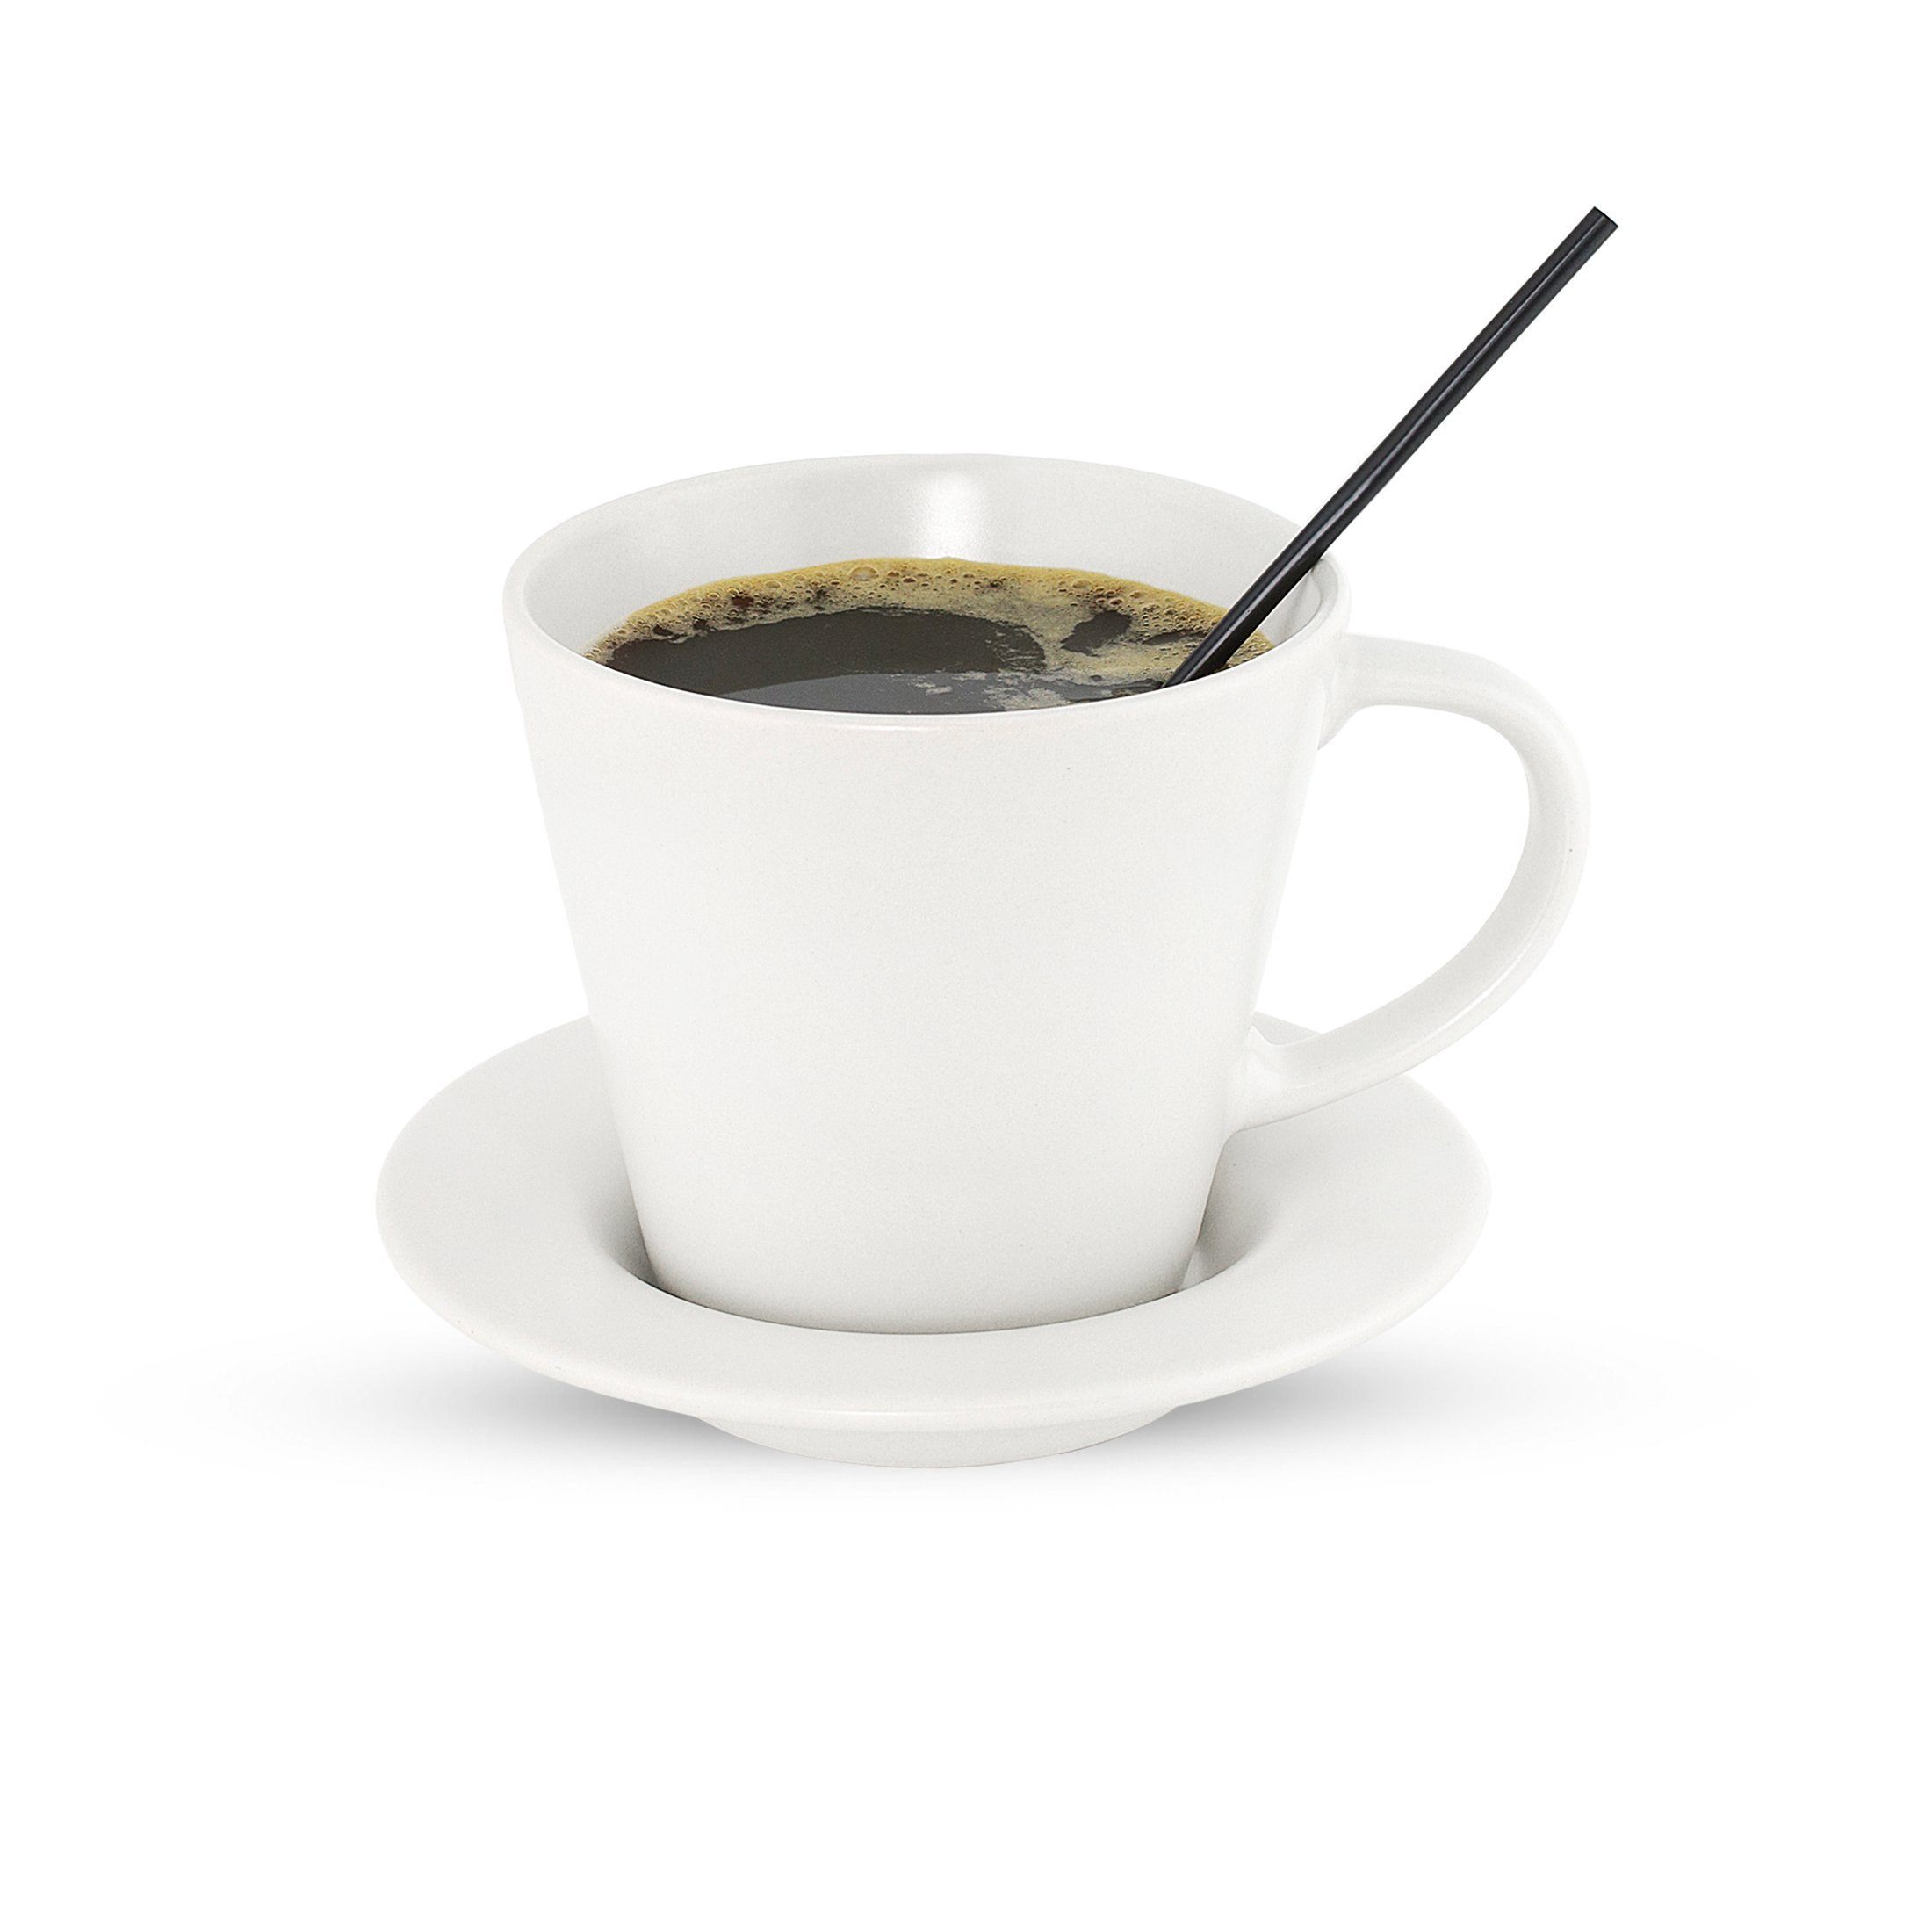 Disposable Plastic Coffee Stirrer Straw - 5 Inch Sip Stir Stick (Black, 2,000) by Rupert and Jeoffrey's Trading Co. (Image #1)